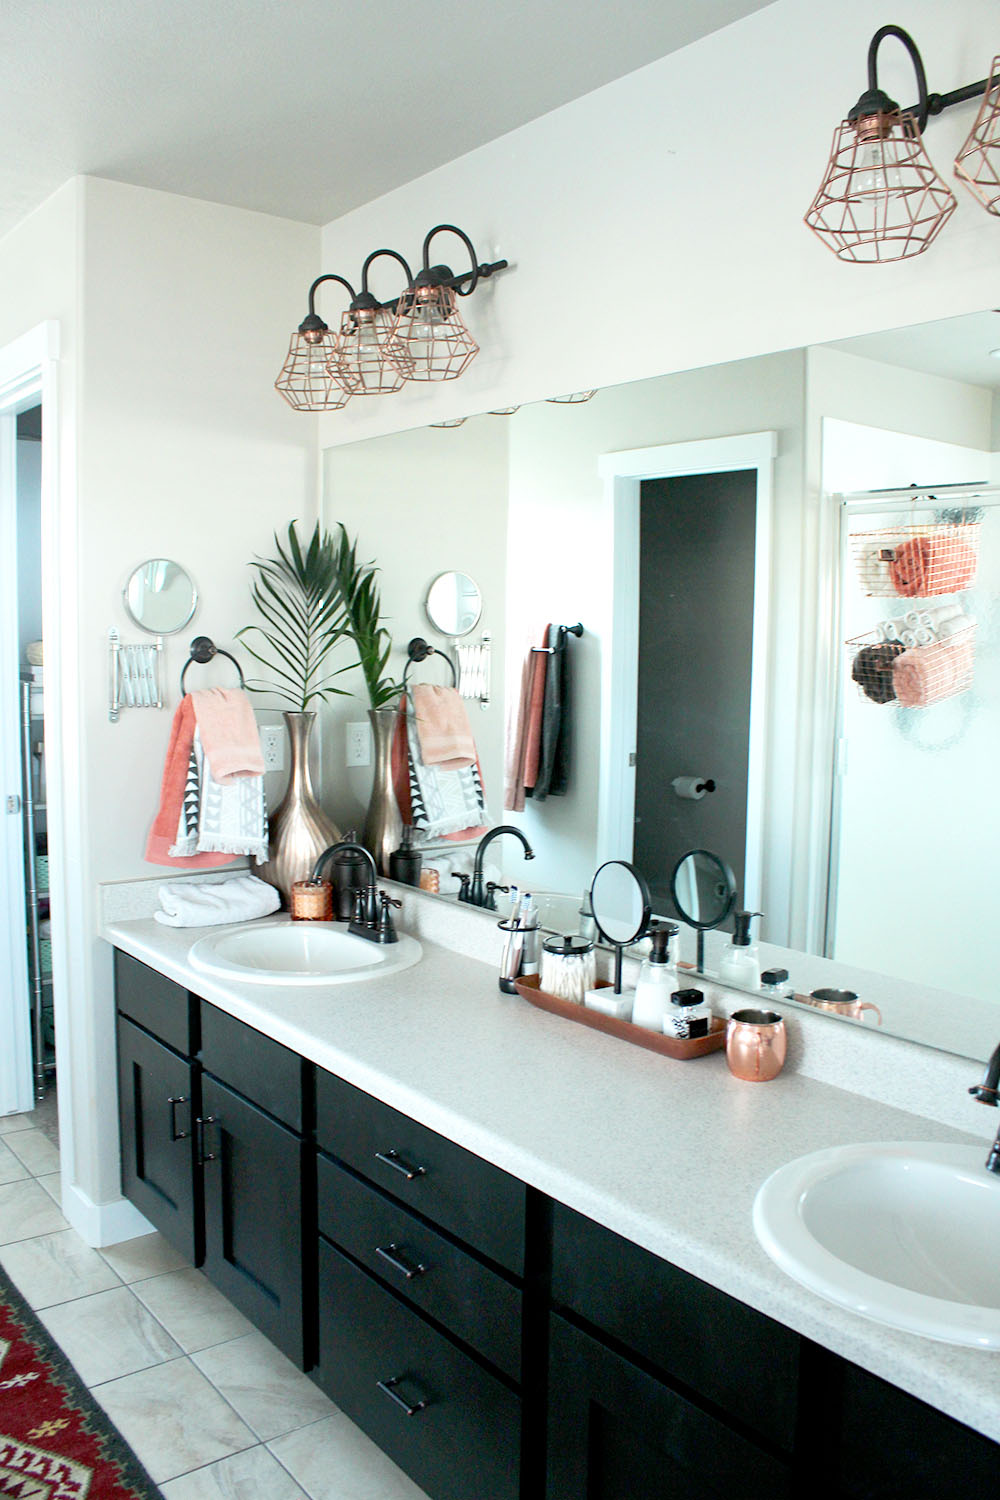 Master Bathroom Updates: Before and Afters